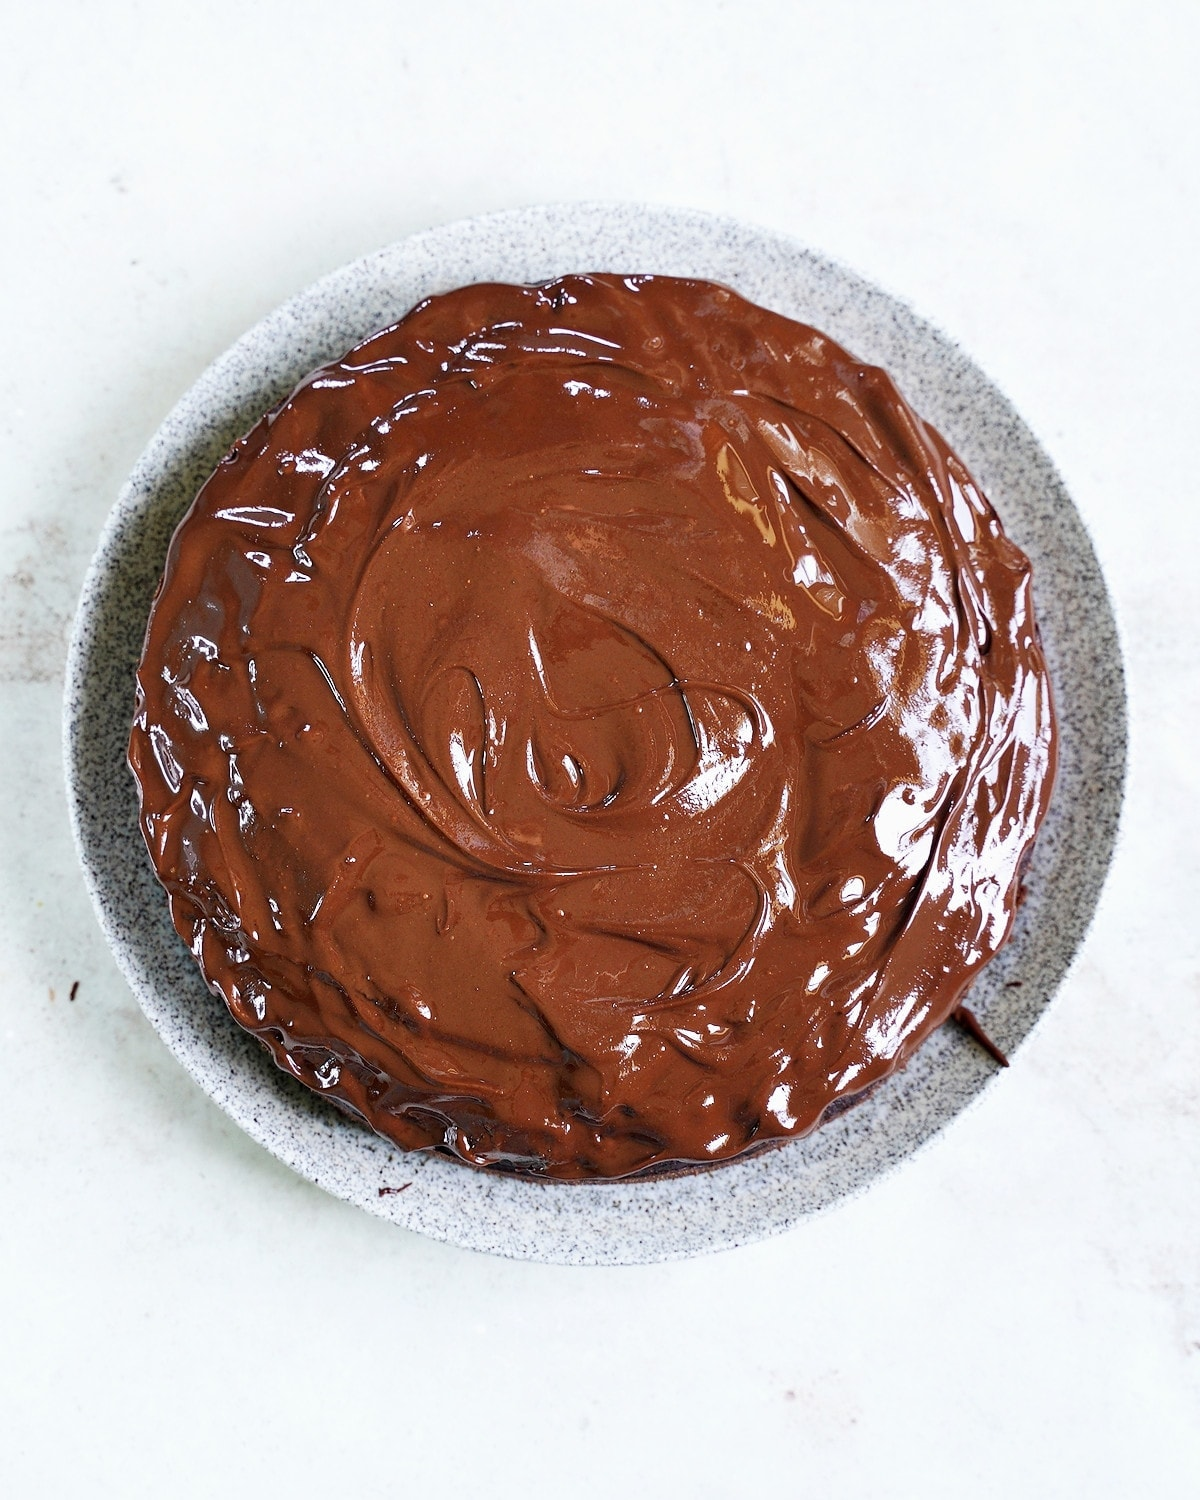 chocolate cake with ganache on plate from above